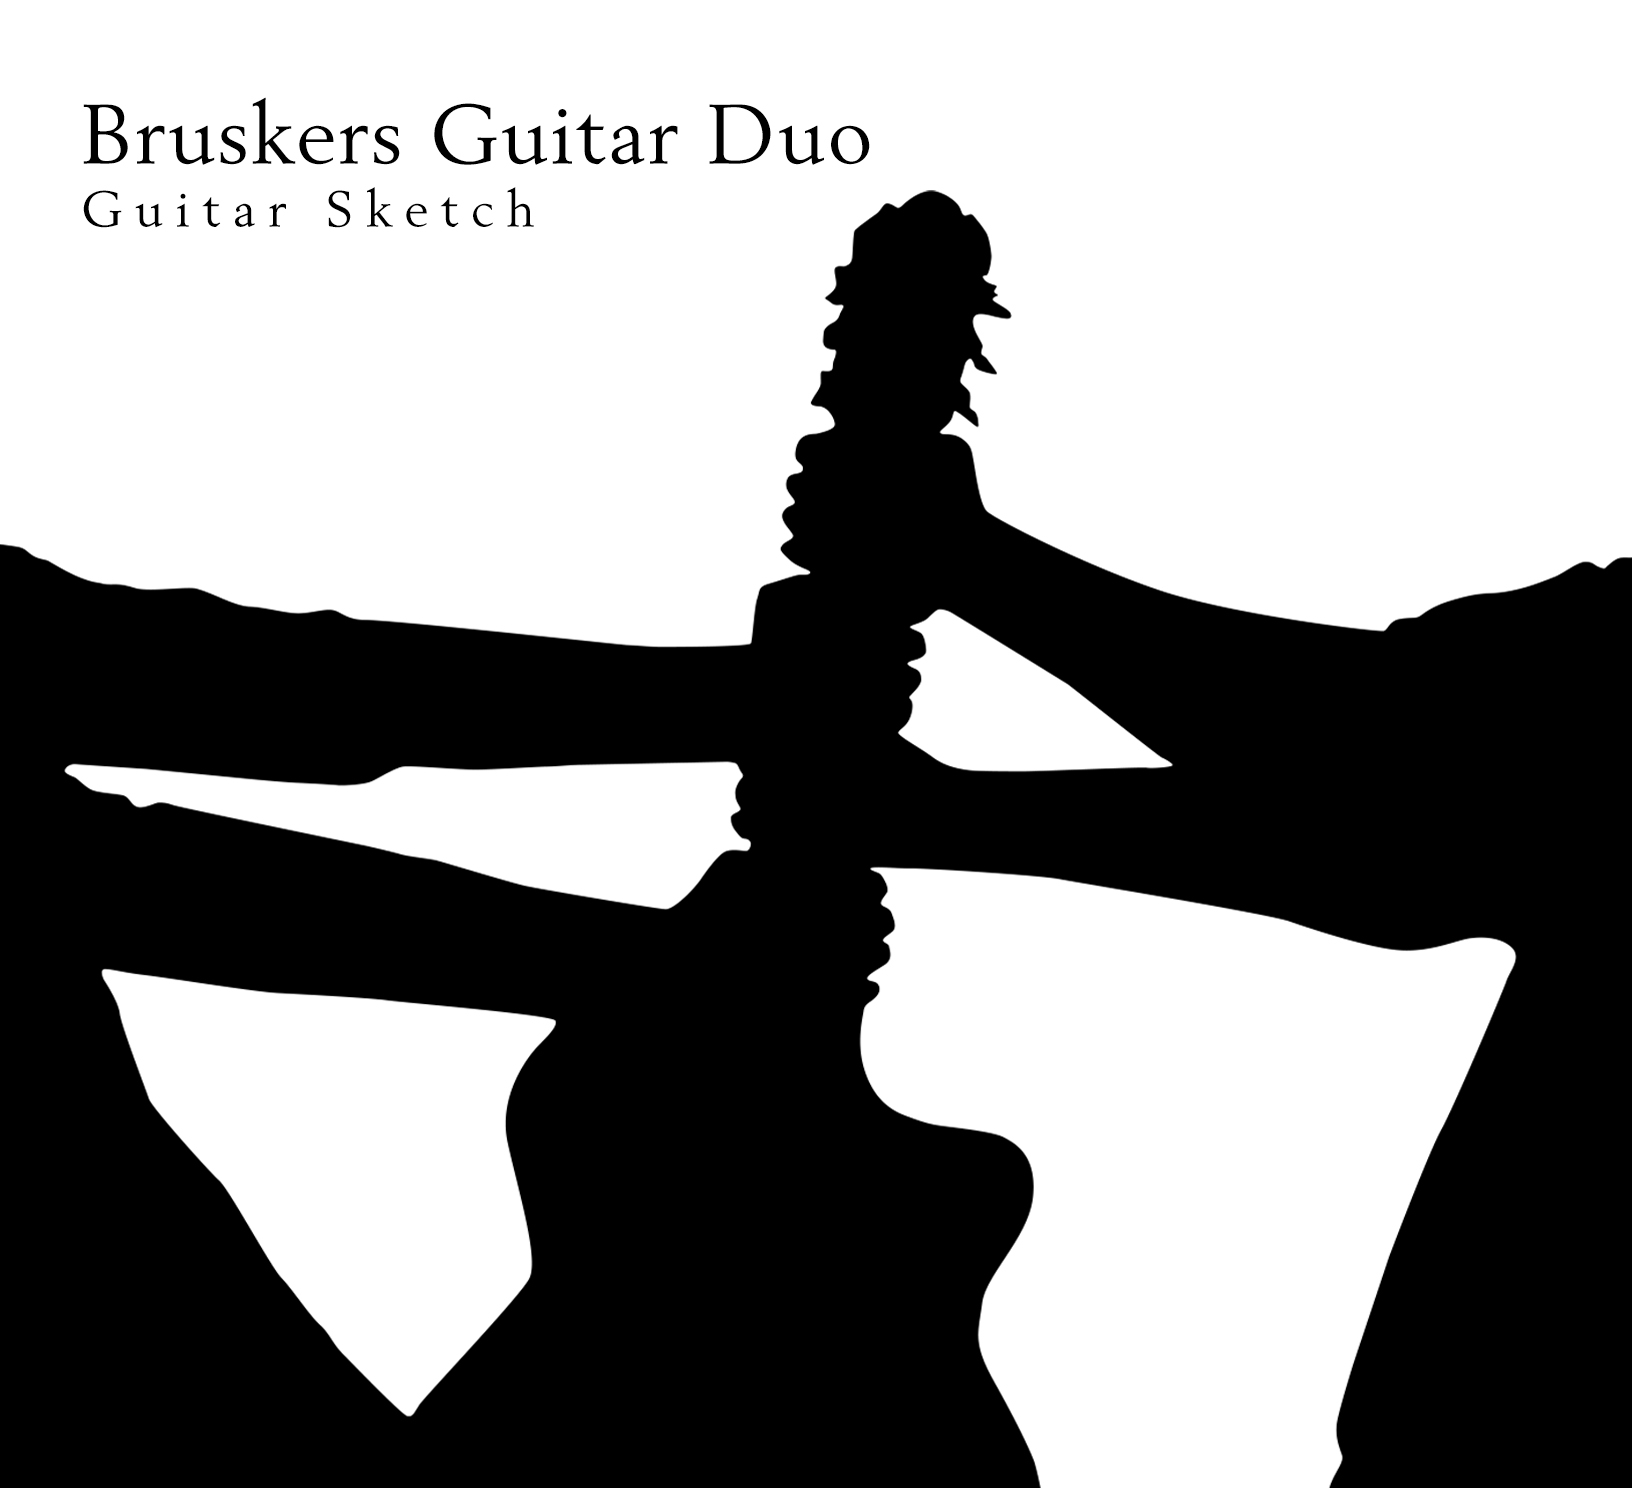 Guitar Sketch - CD cover - Bruskers Guitar Duo